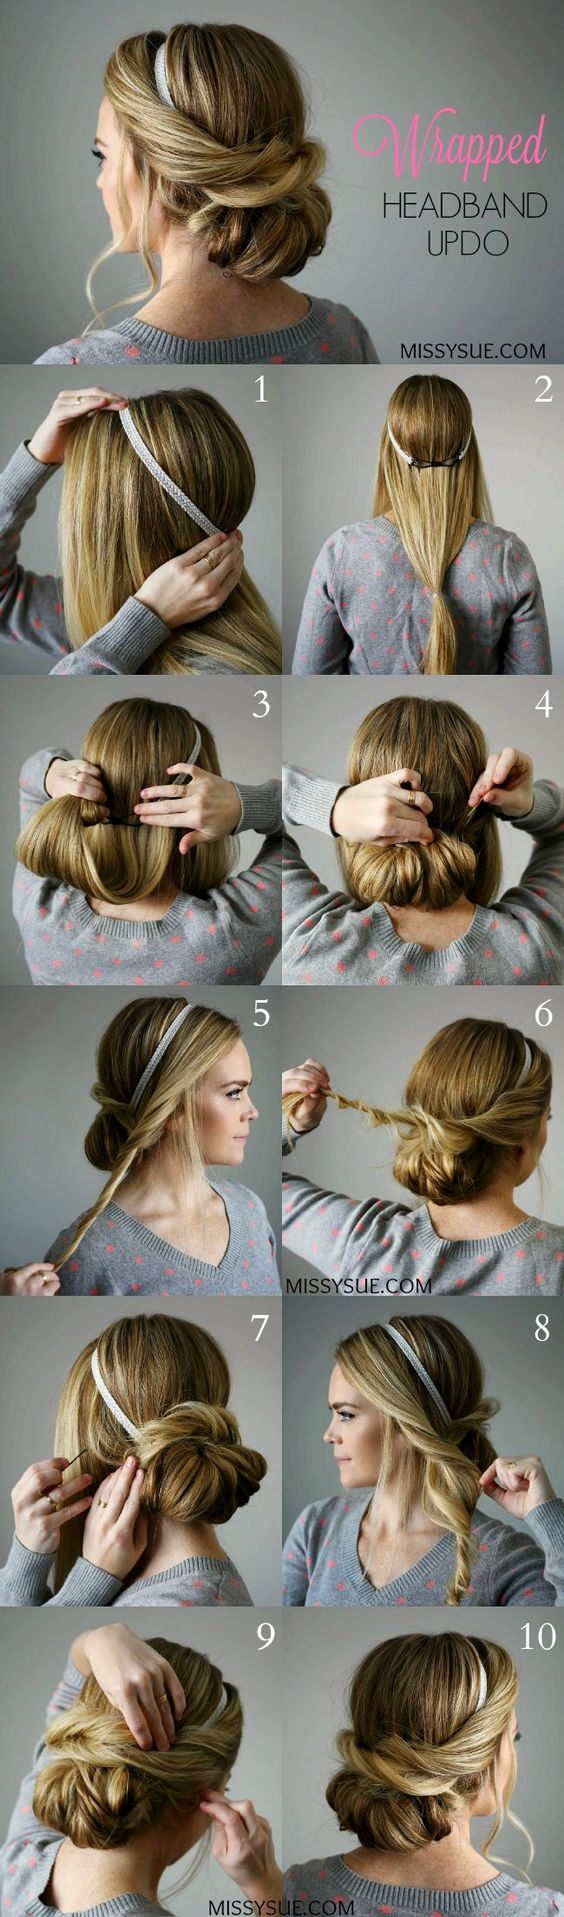 hairstyle-girls-pretty-fast-simple